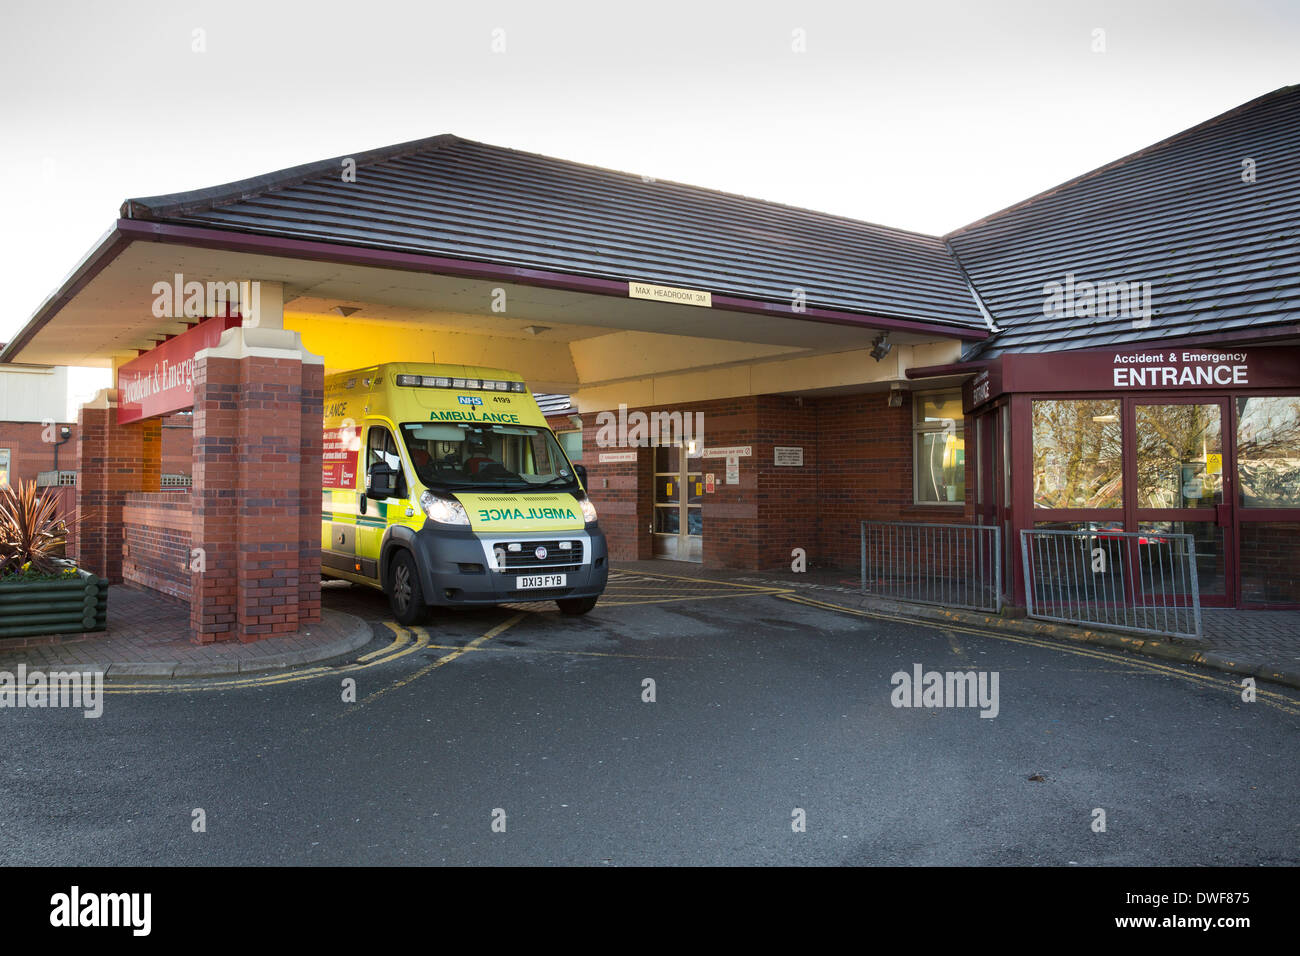 Heartlands hospital birmingham pictured the accident and heartlands hospital birmingham pictured the accident and emergency entrance to the hospital thecheapjerseys Choice Image